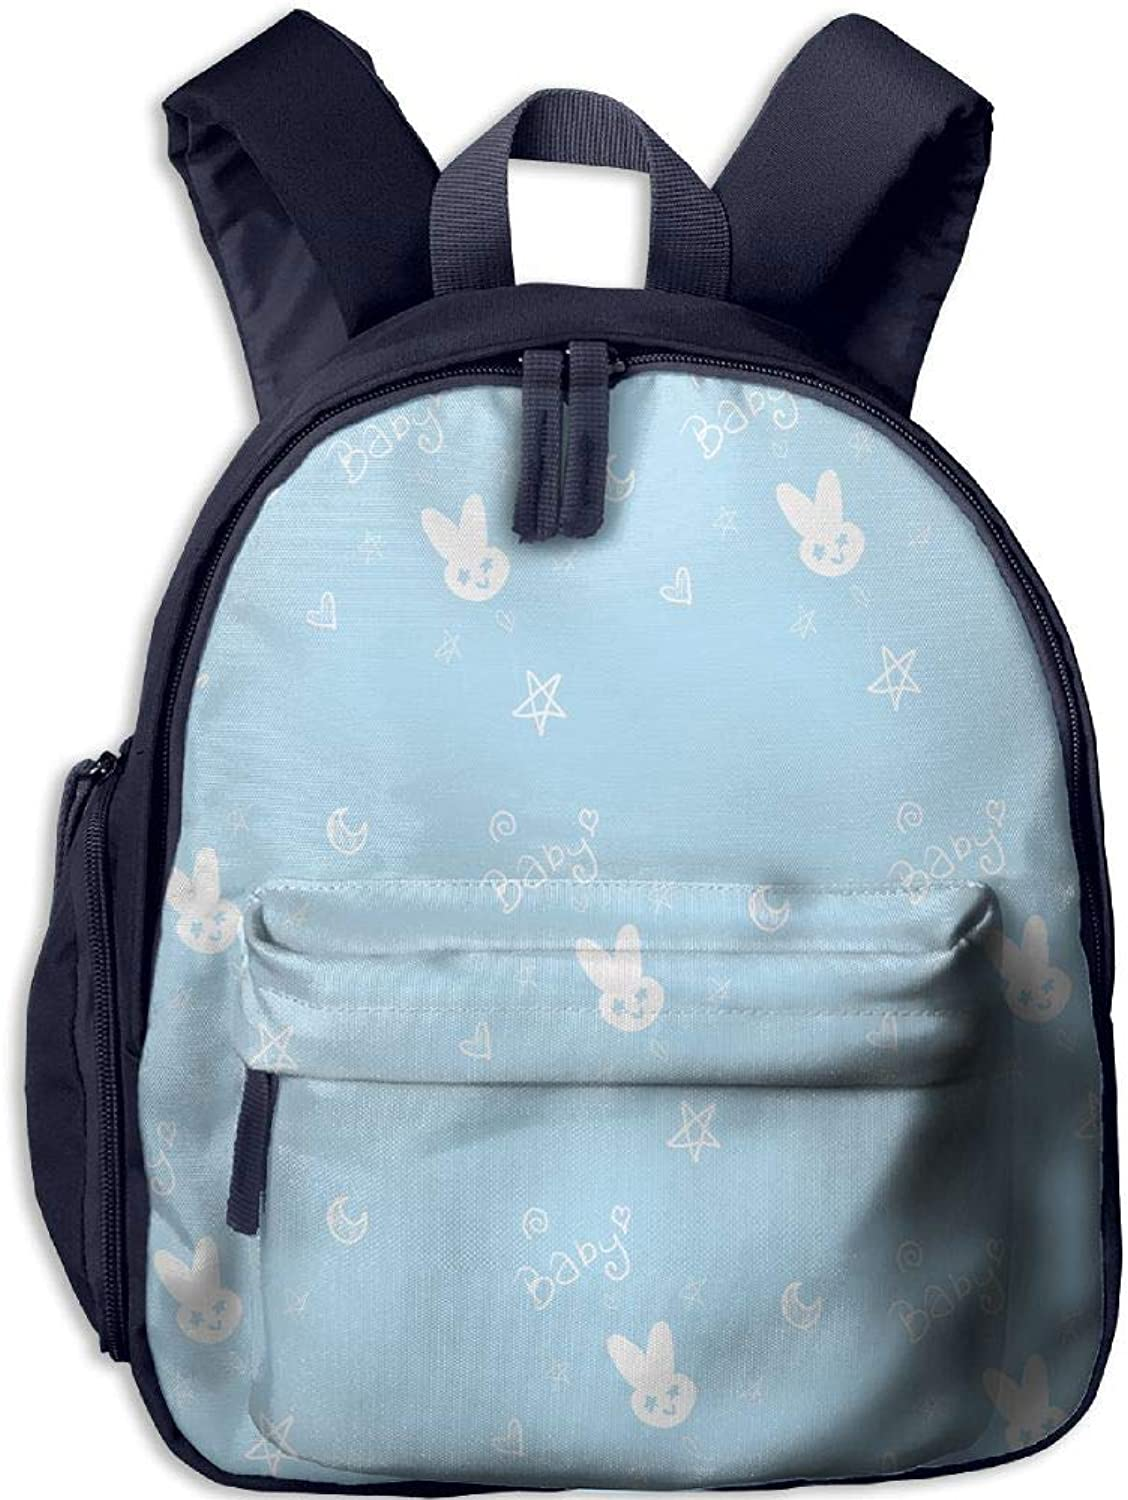 Pinta Rabbit Cub Cool School Book Bag Backpacks for Girl's Boy's